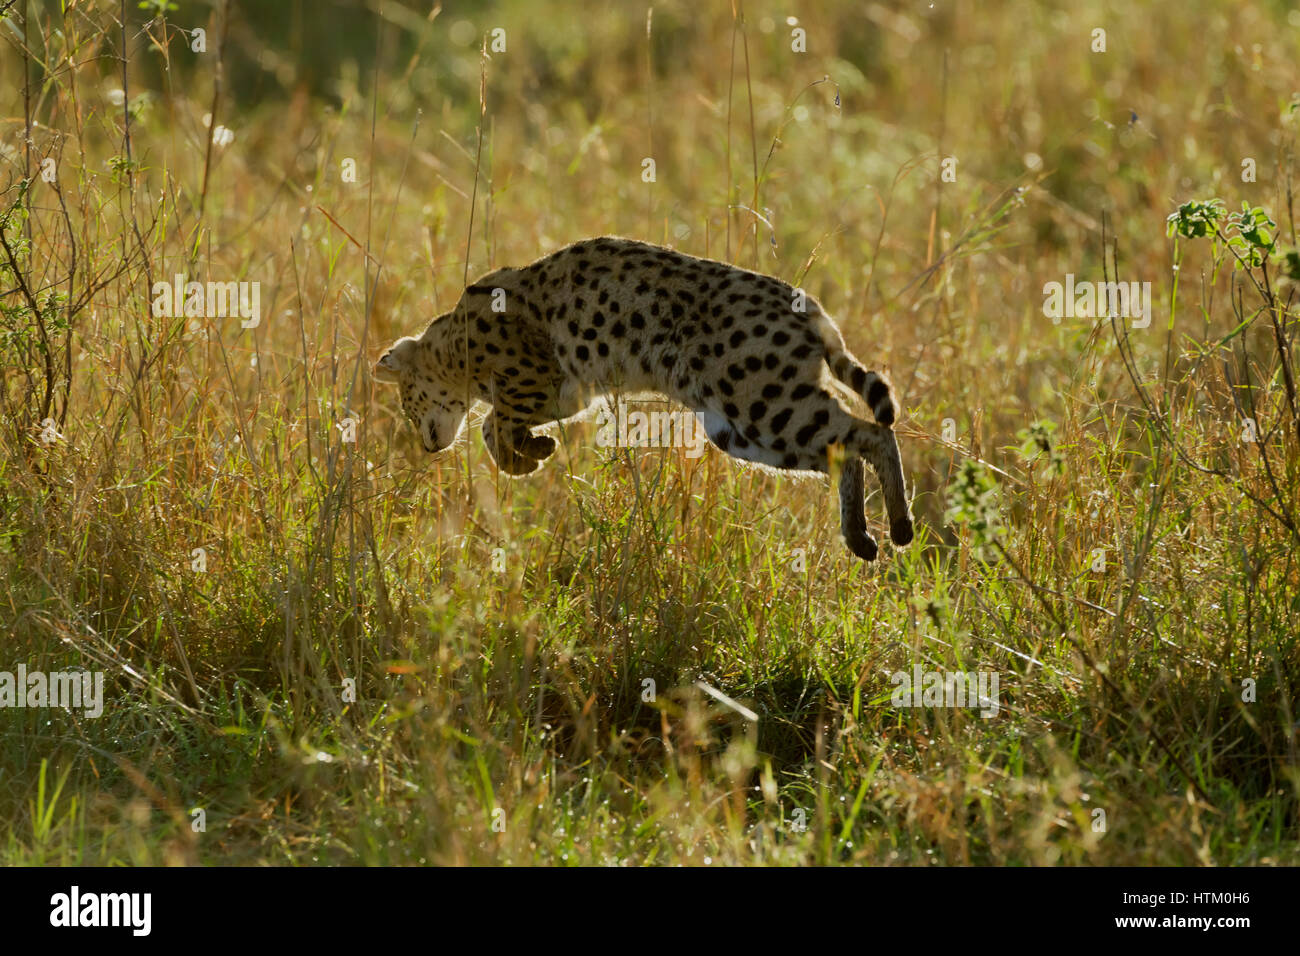 Serval (Felis serval) leaping in the air after prey, Masai Mara National Reserve, Kenya, East Africa - Stock Image